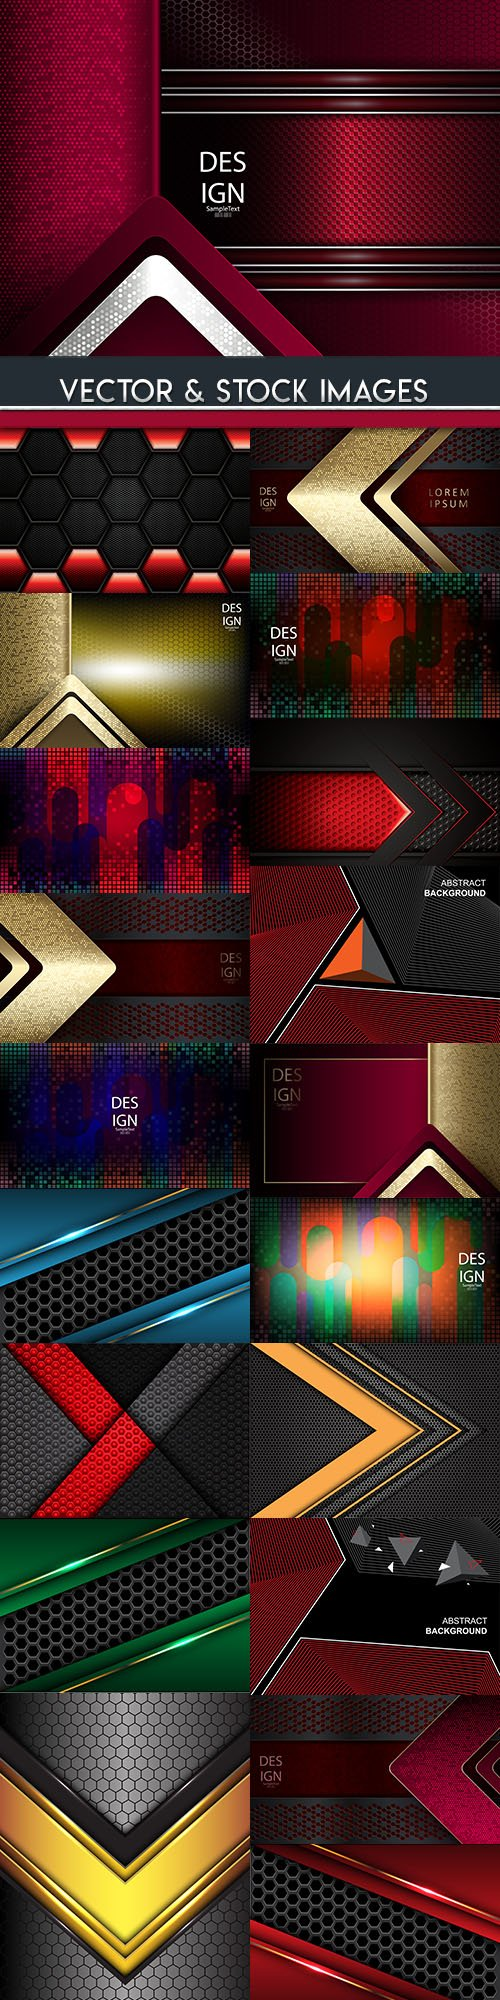 Elegant metallic and geometrical black background